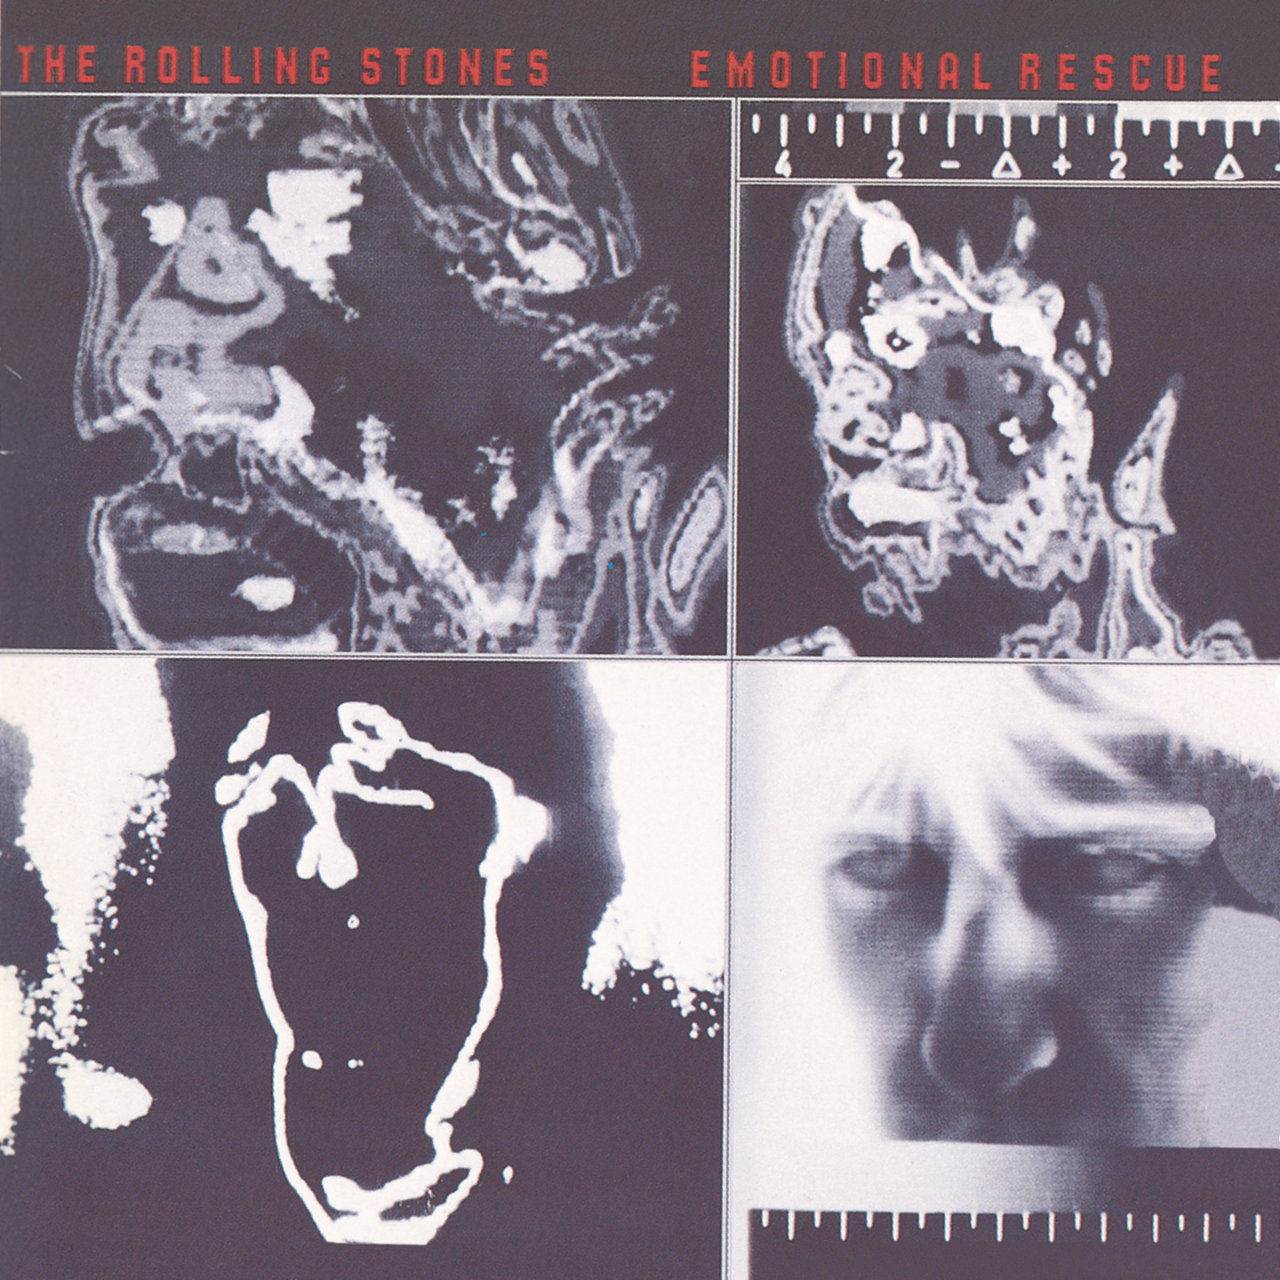 Emotional Rescue ((Remastered))